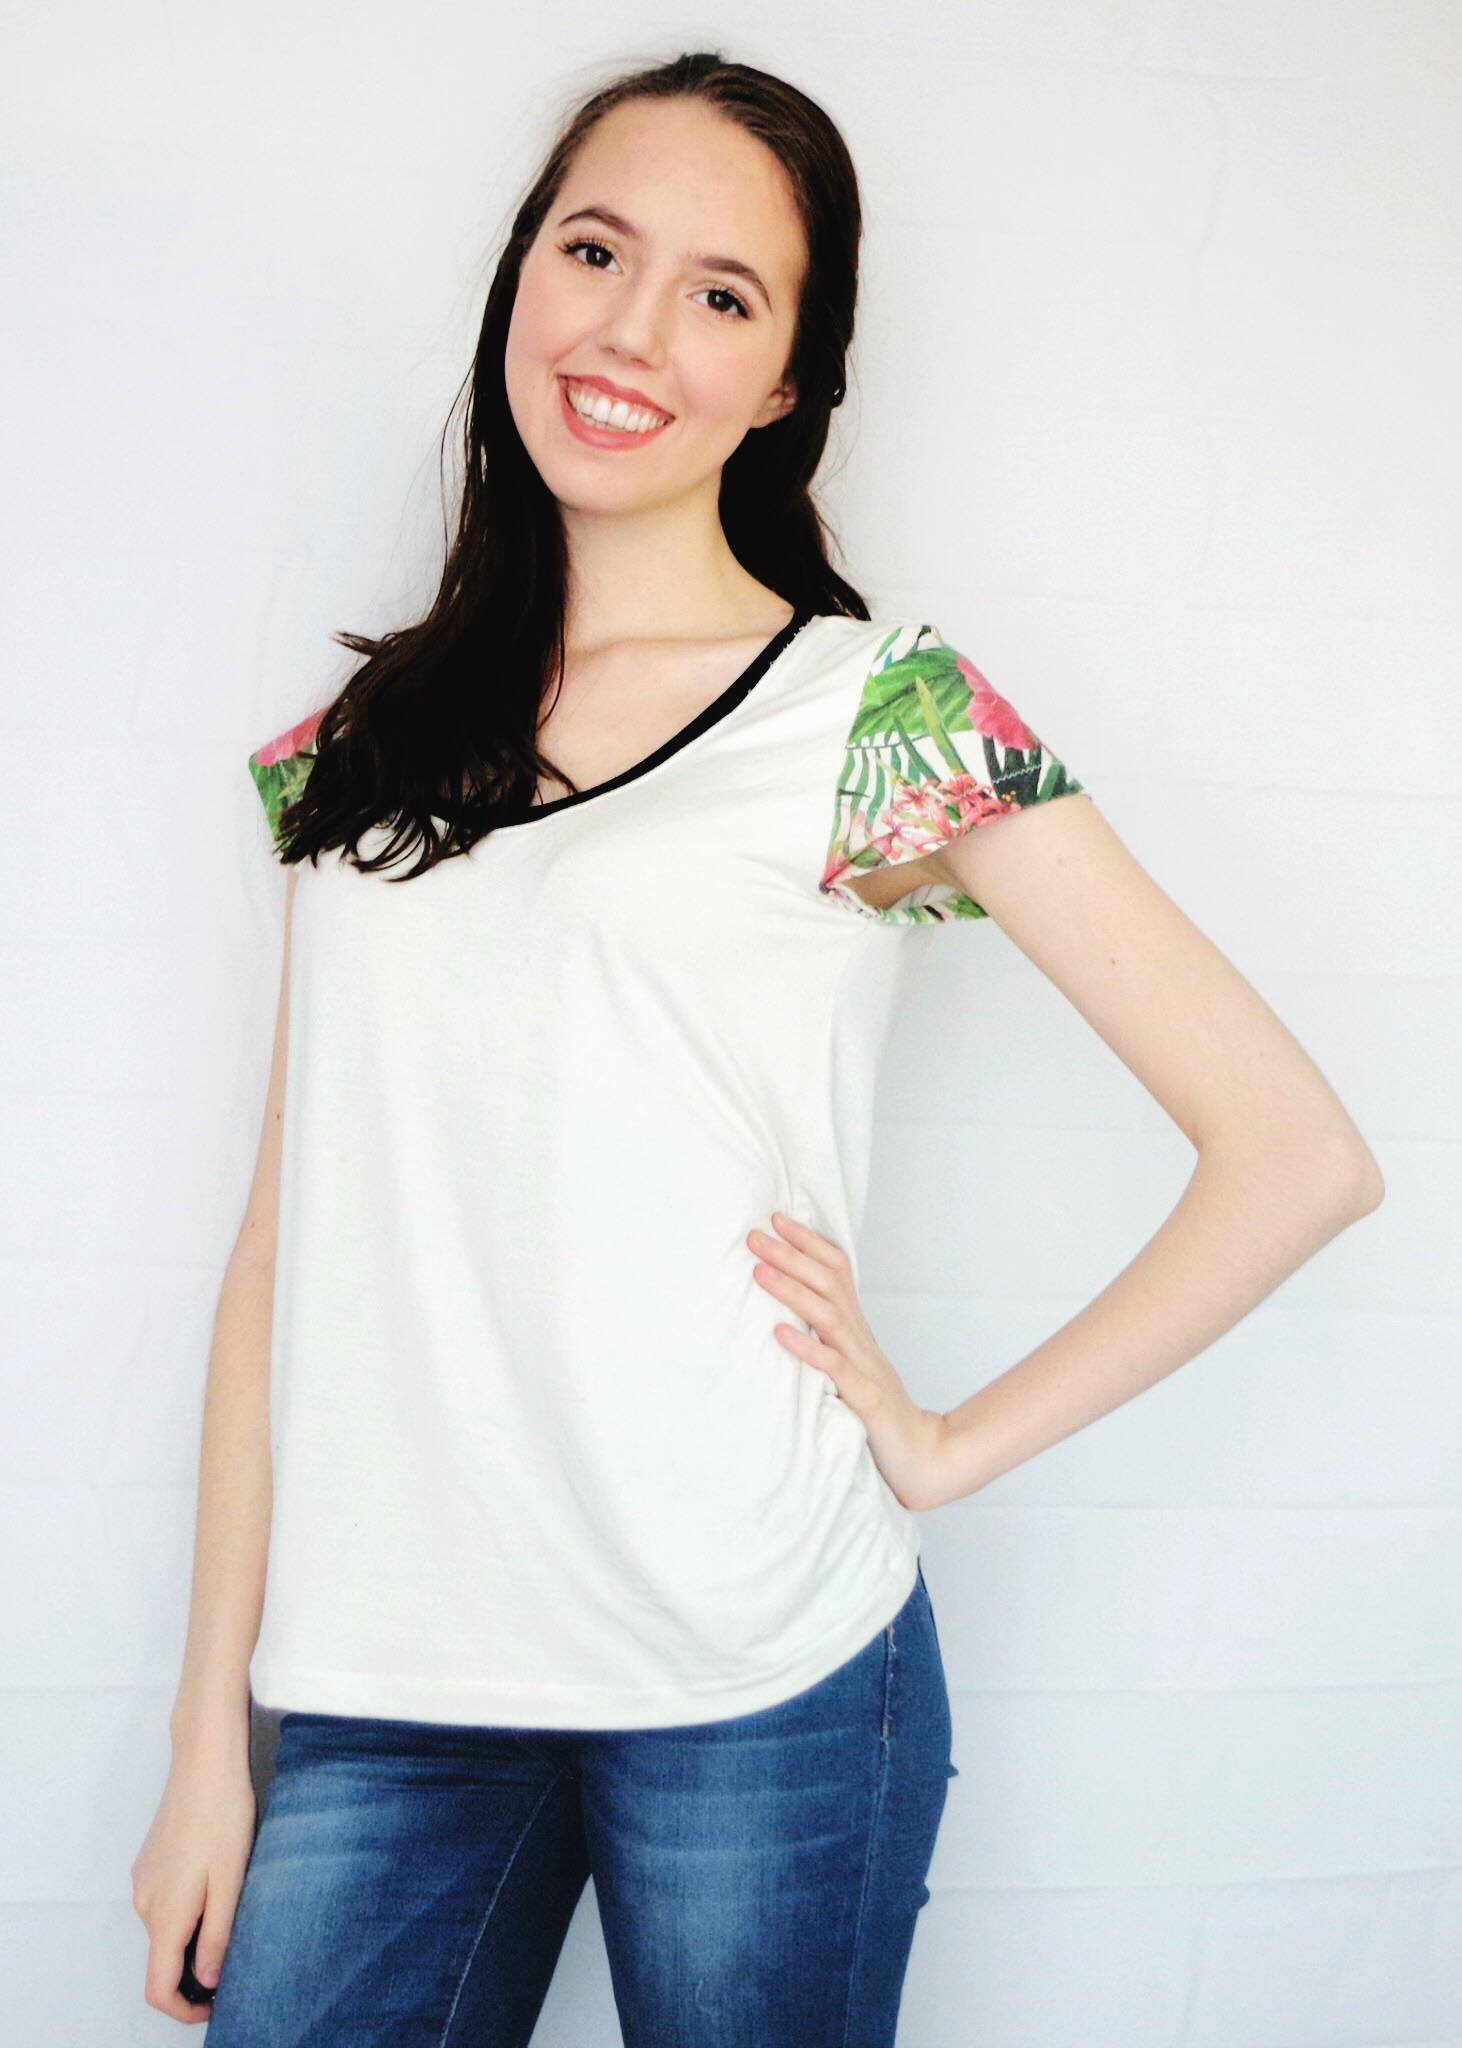 Montlake Tee from Straight Stitch Designs - Sewn by Rachel over at The Wild Stitch!